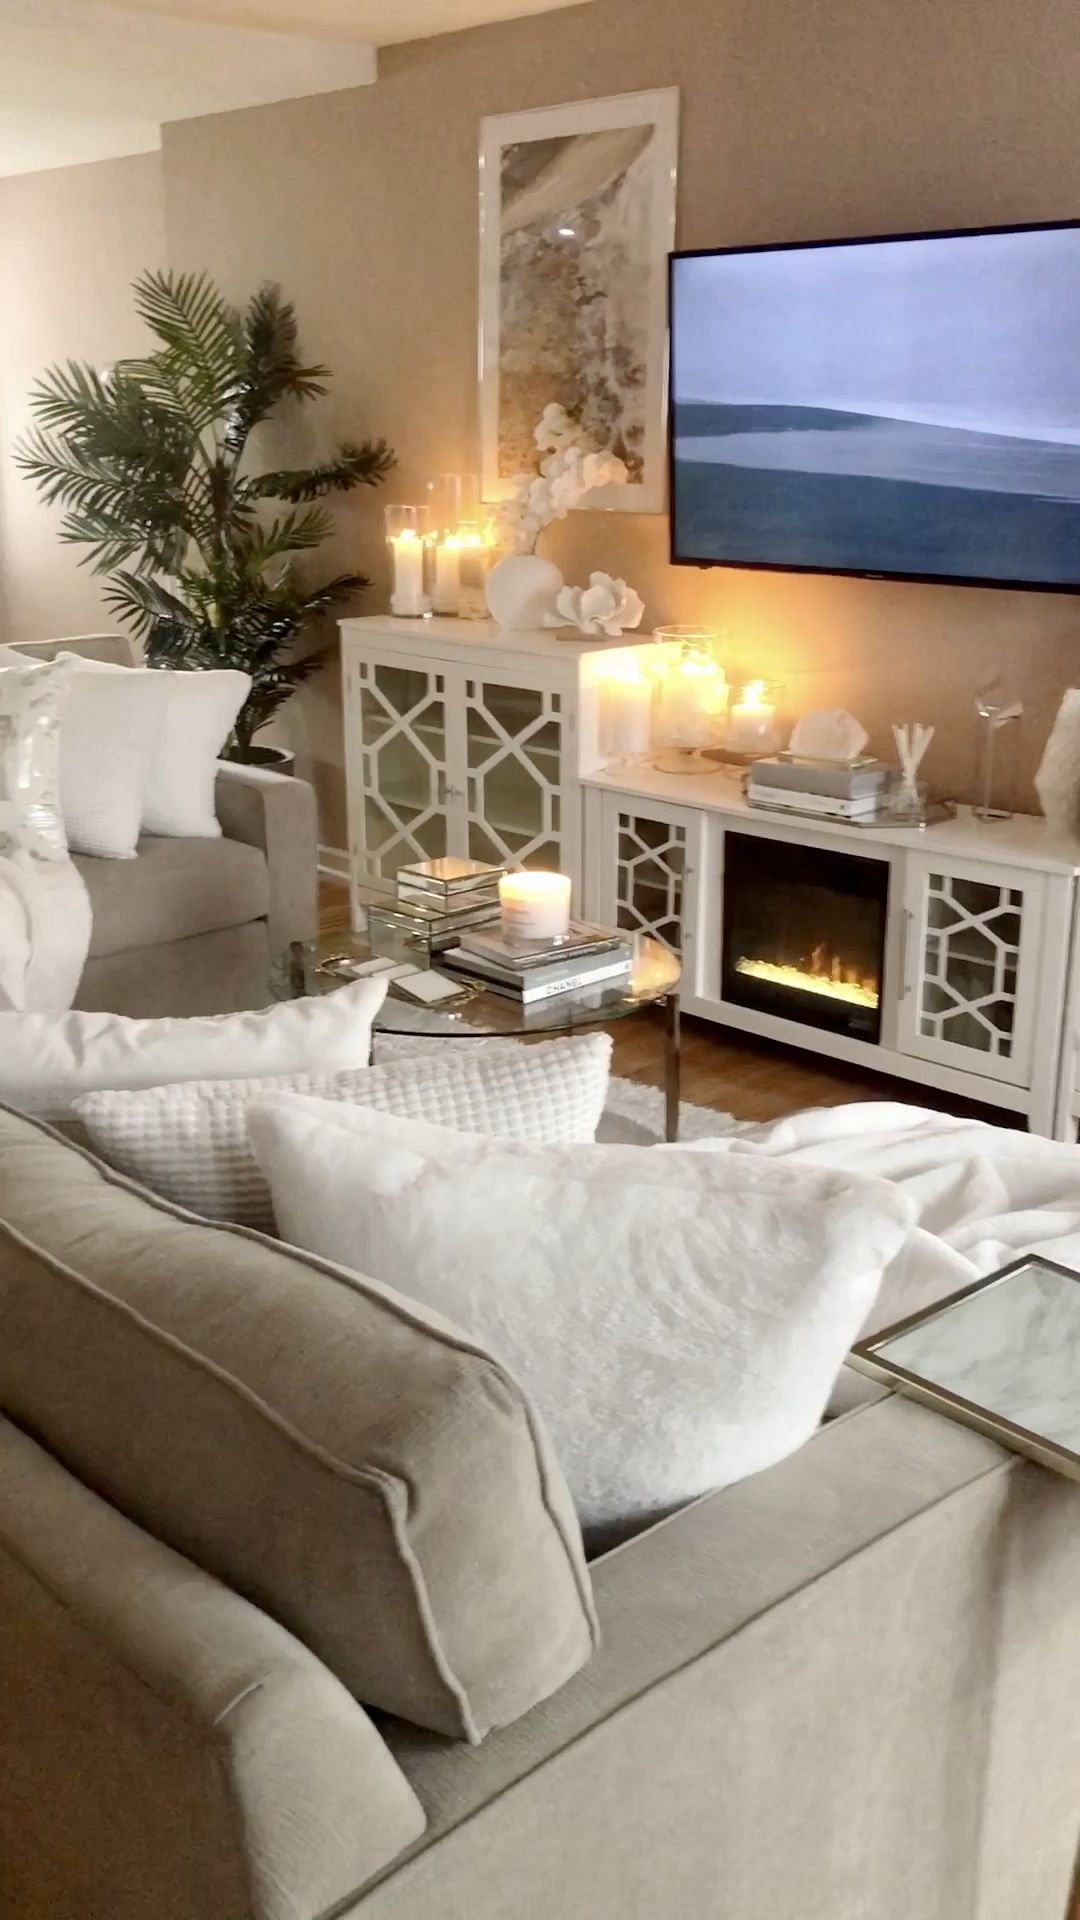 Photo of Taystful Living – Living Room Decor